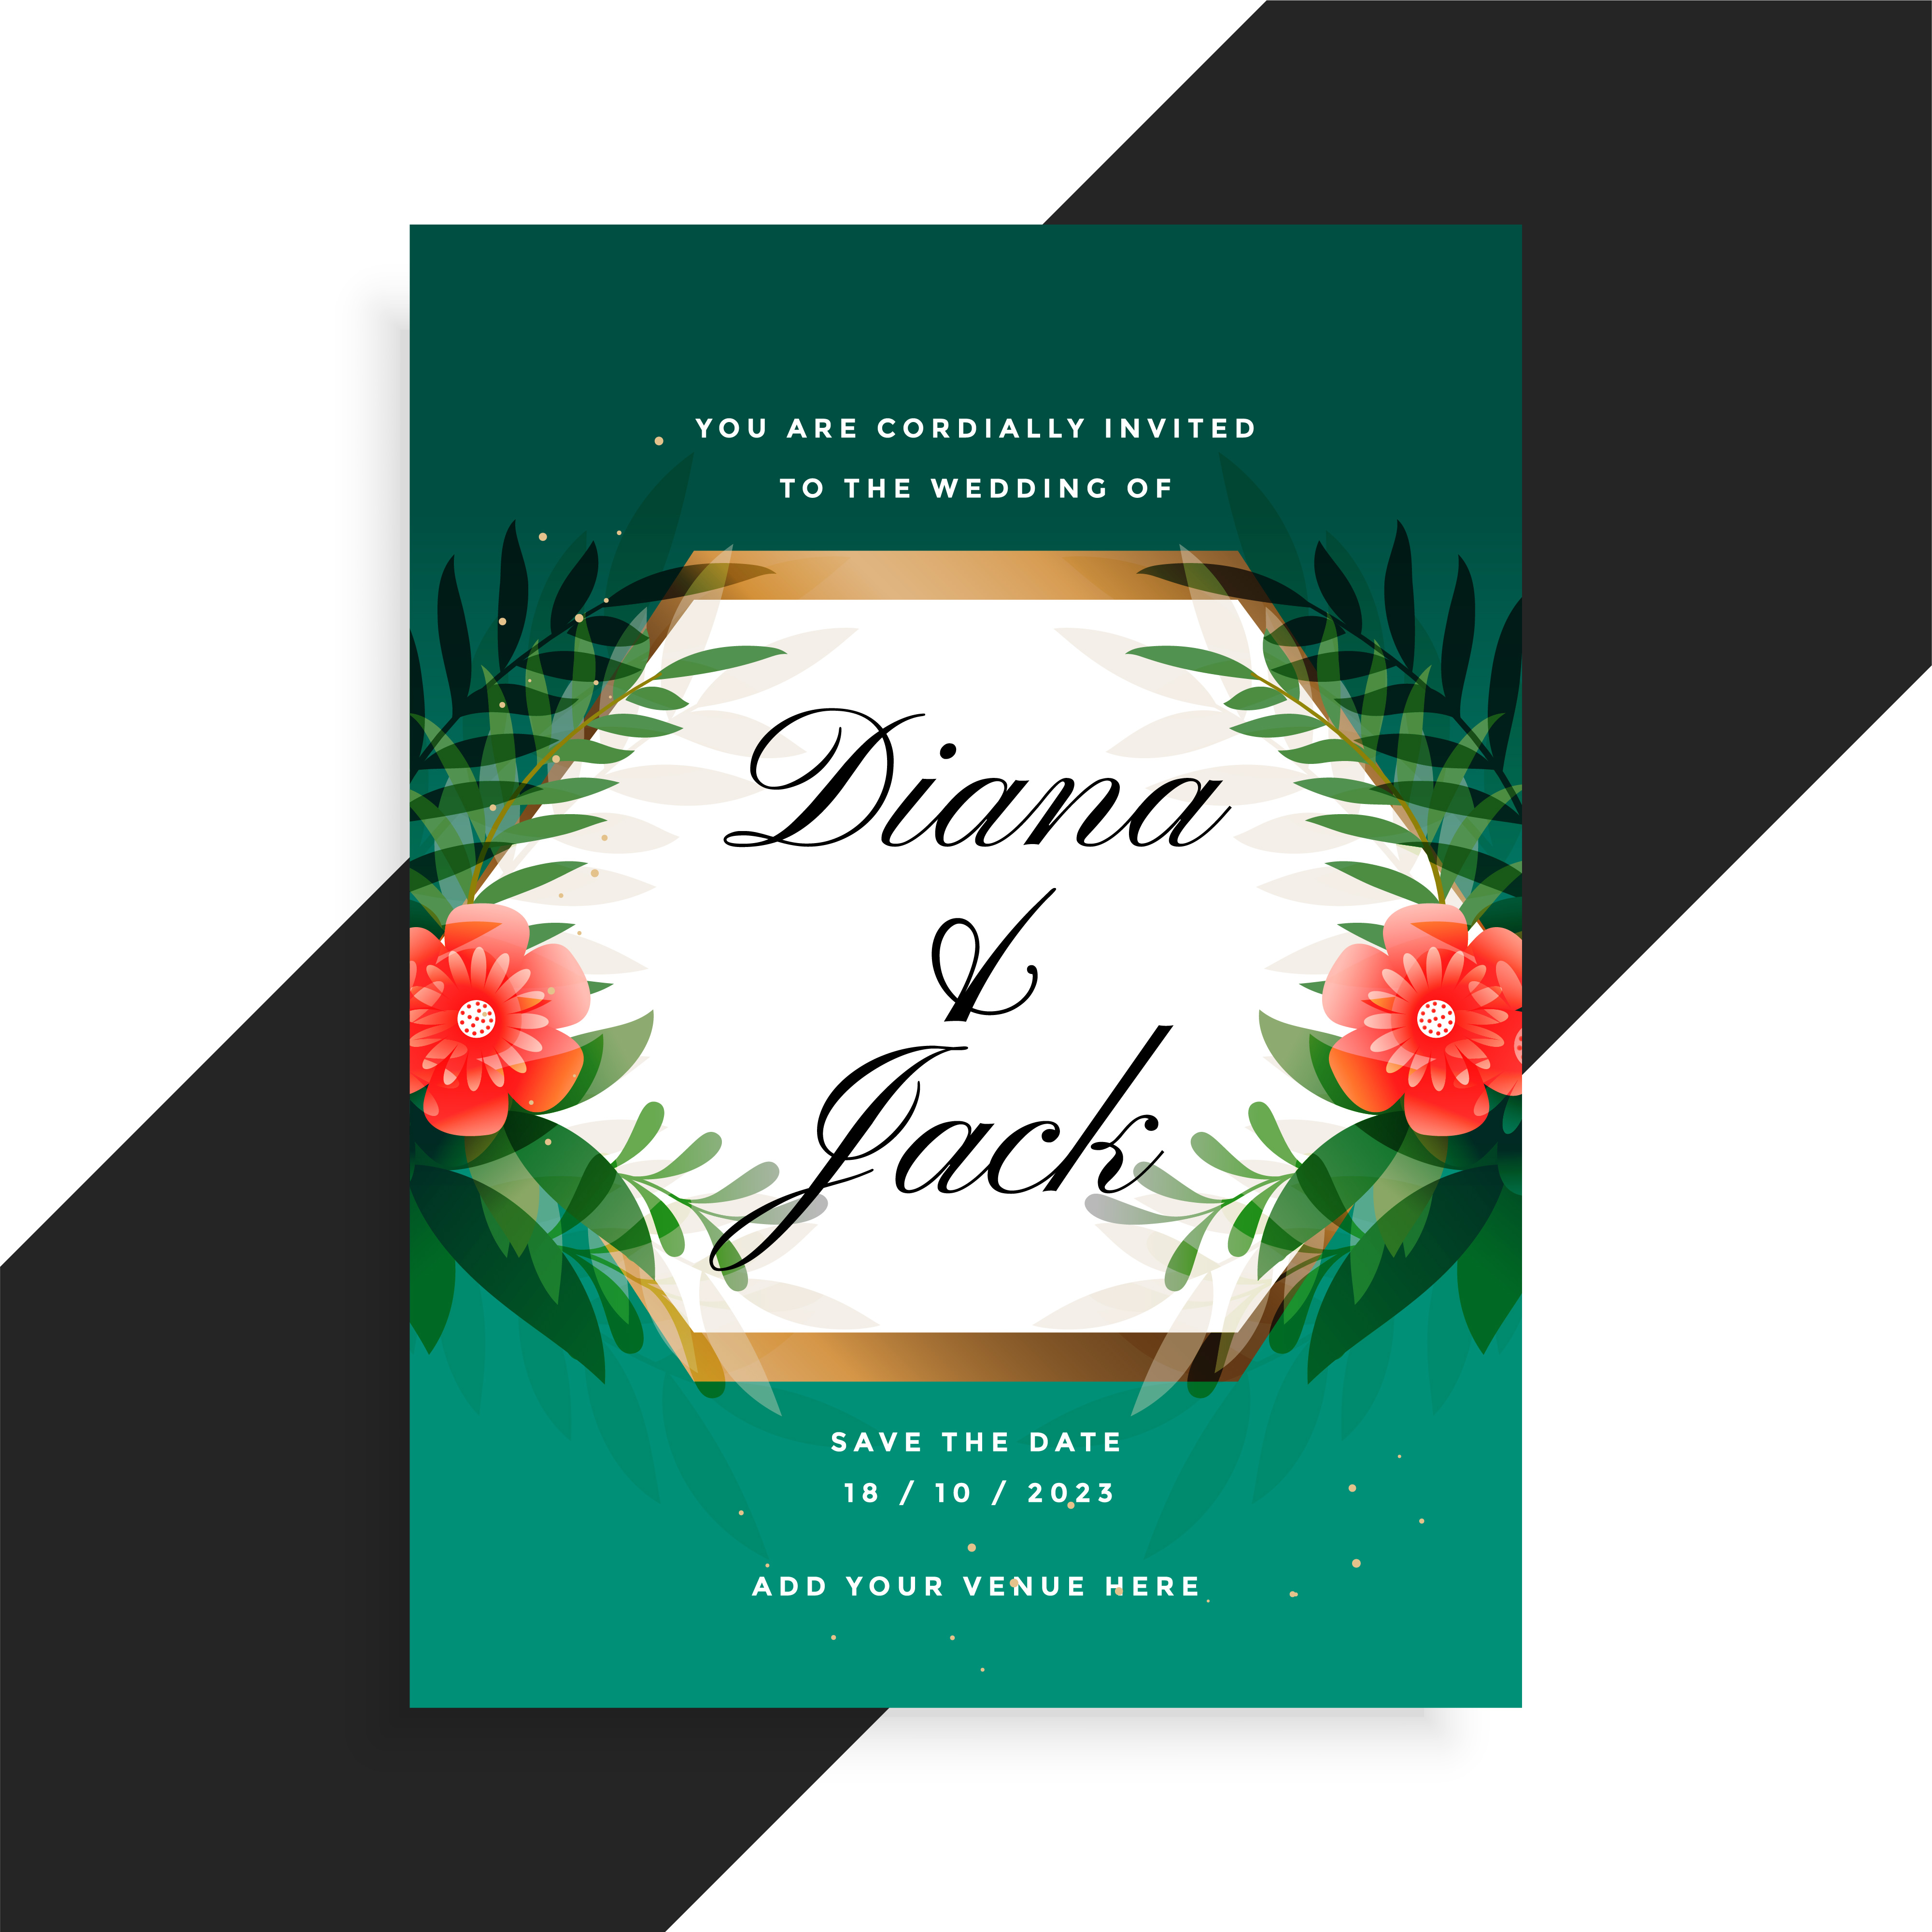 Flowers Vector Design Wedding Invitations Wedding: Wedding Invitation Floral Card Design With Flower And